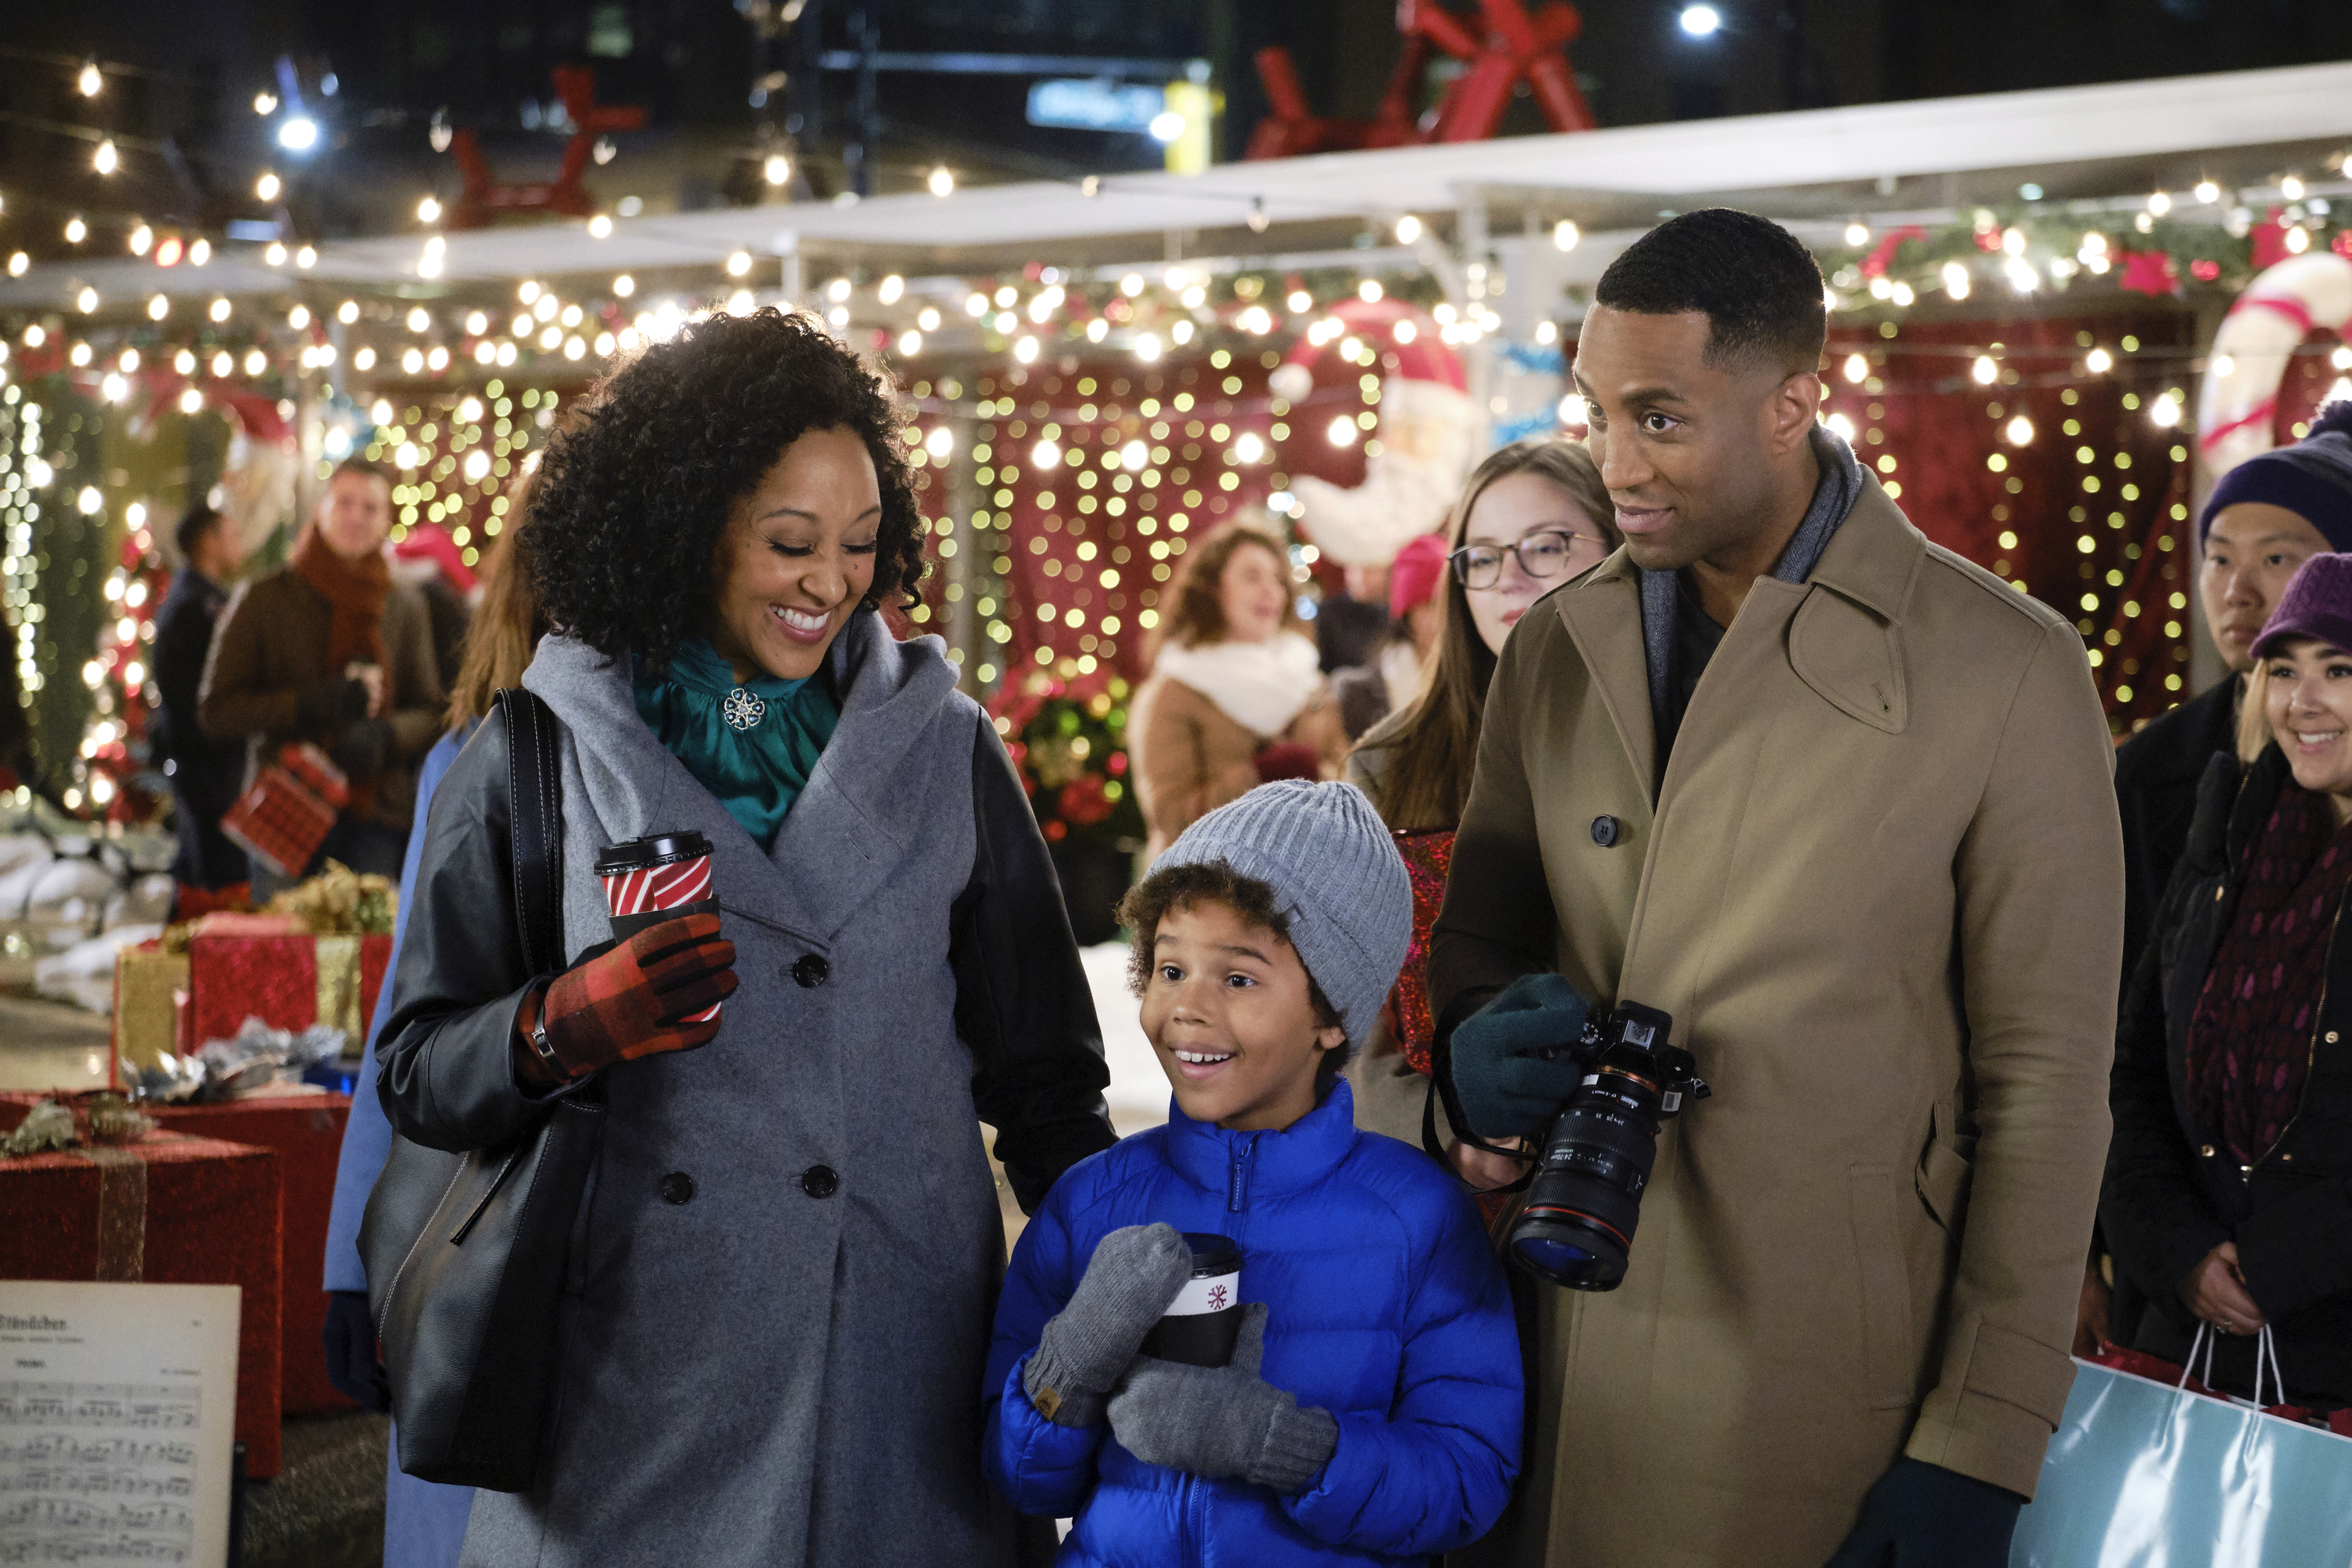 Campbell's secures prime real estate at Walmart in deal with Hallmark Channel